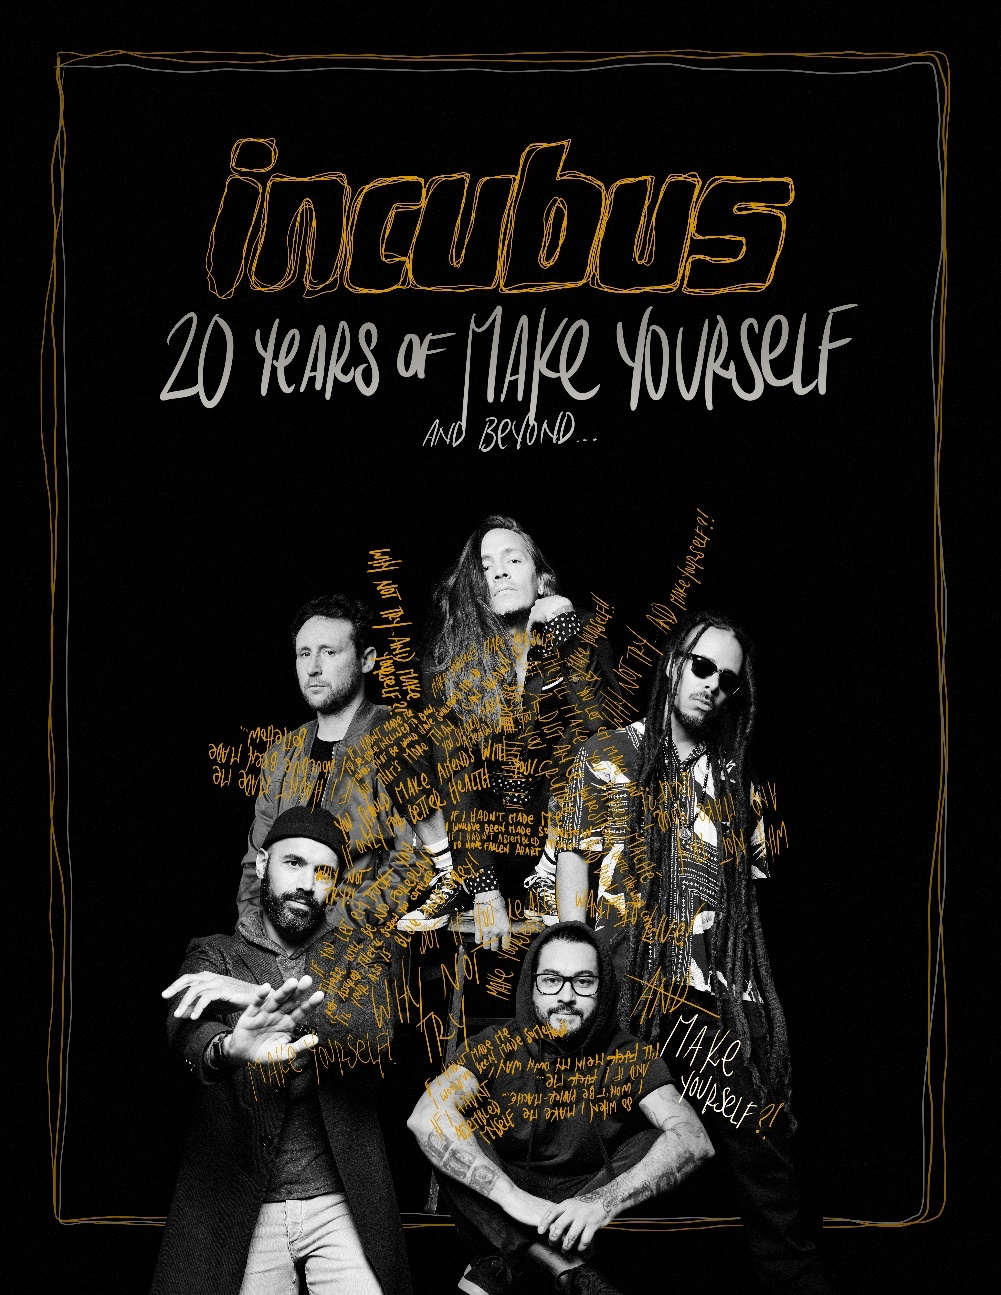 Incubus 20 Years of Make Yourself & Beyond 2019 Tour Dates poster